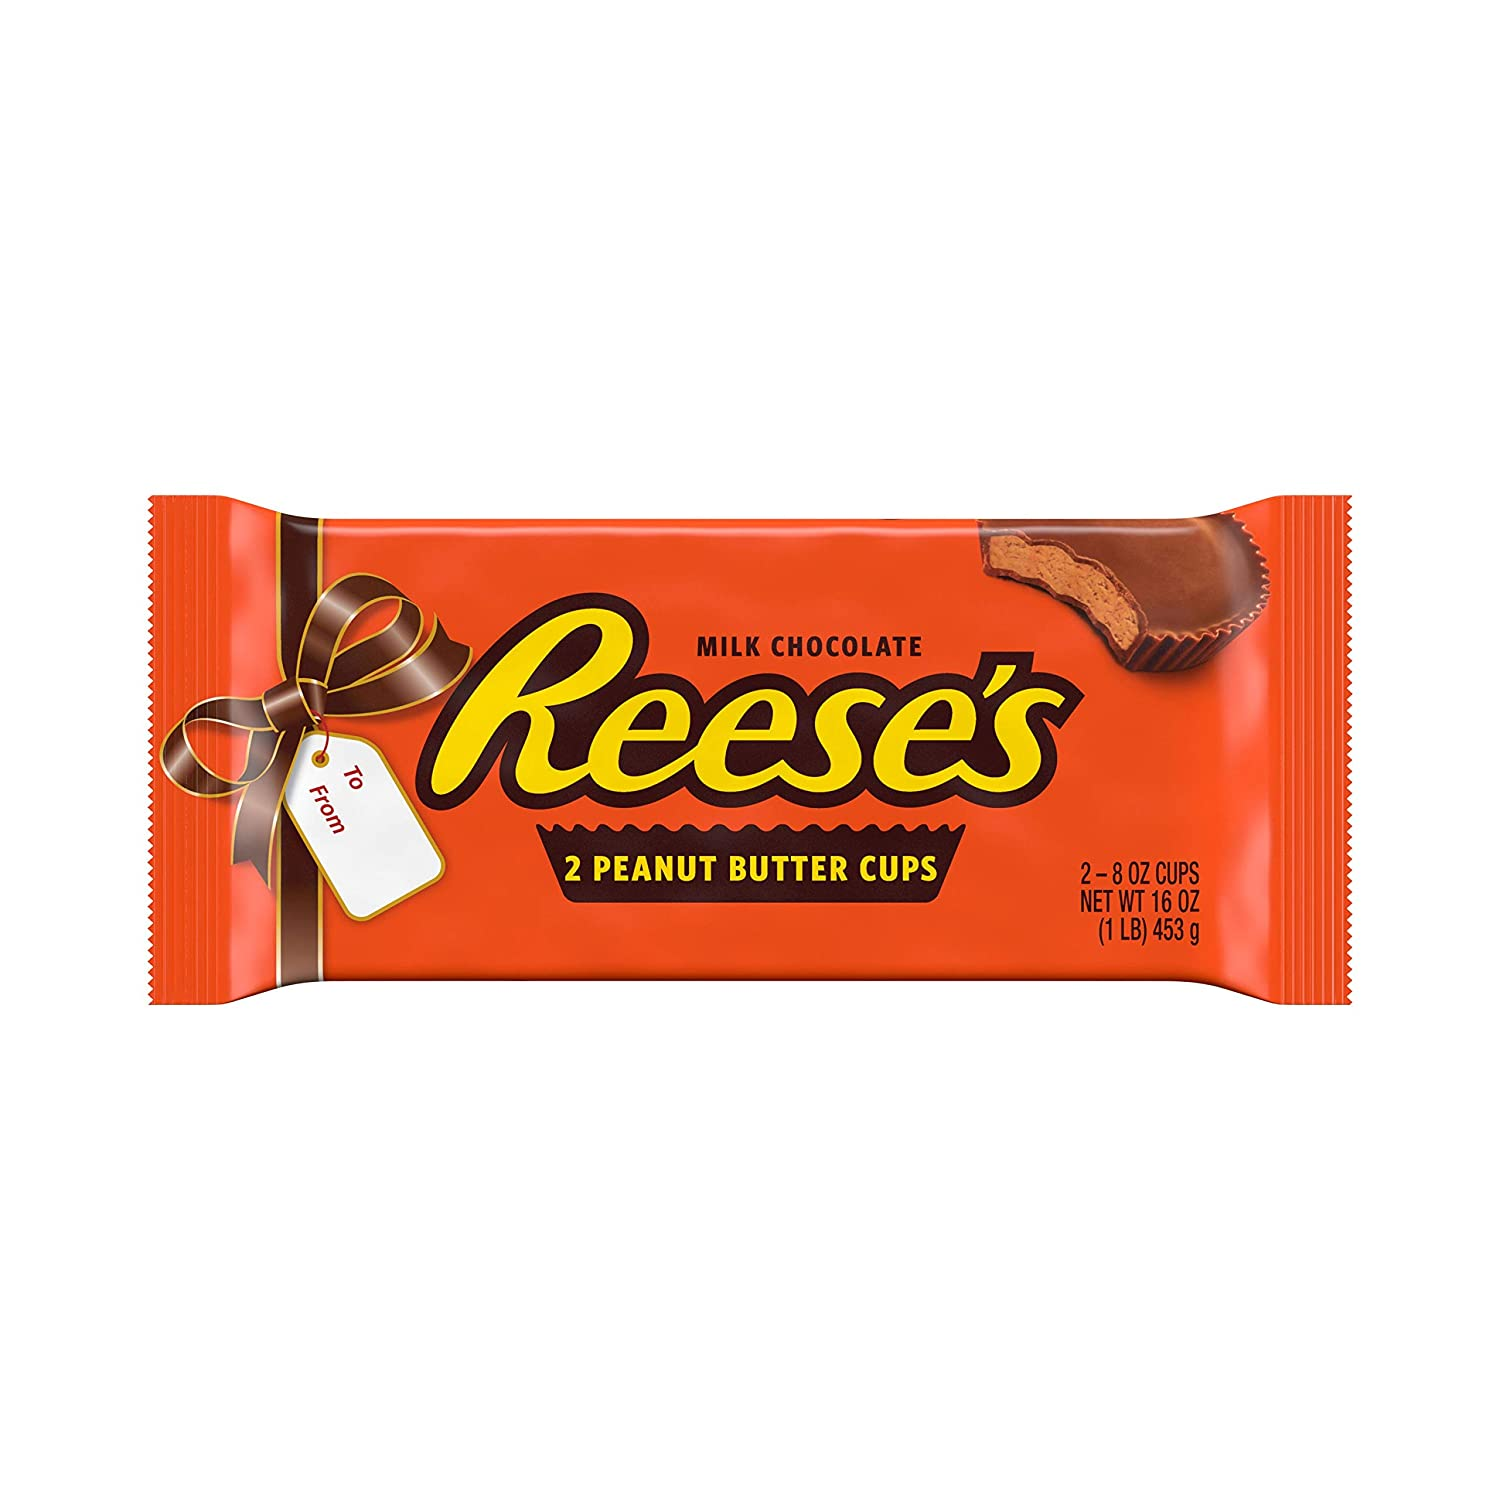 Amazon Com Reese S Milk Chocolate Peanut Butter Cups Candy Easter Gift 1 Lb Pack Candy And Chocolate Bars Grocery Gourmet Food